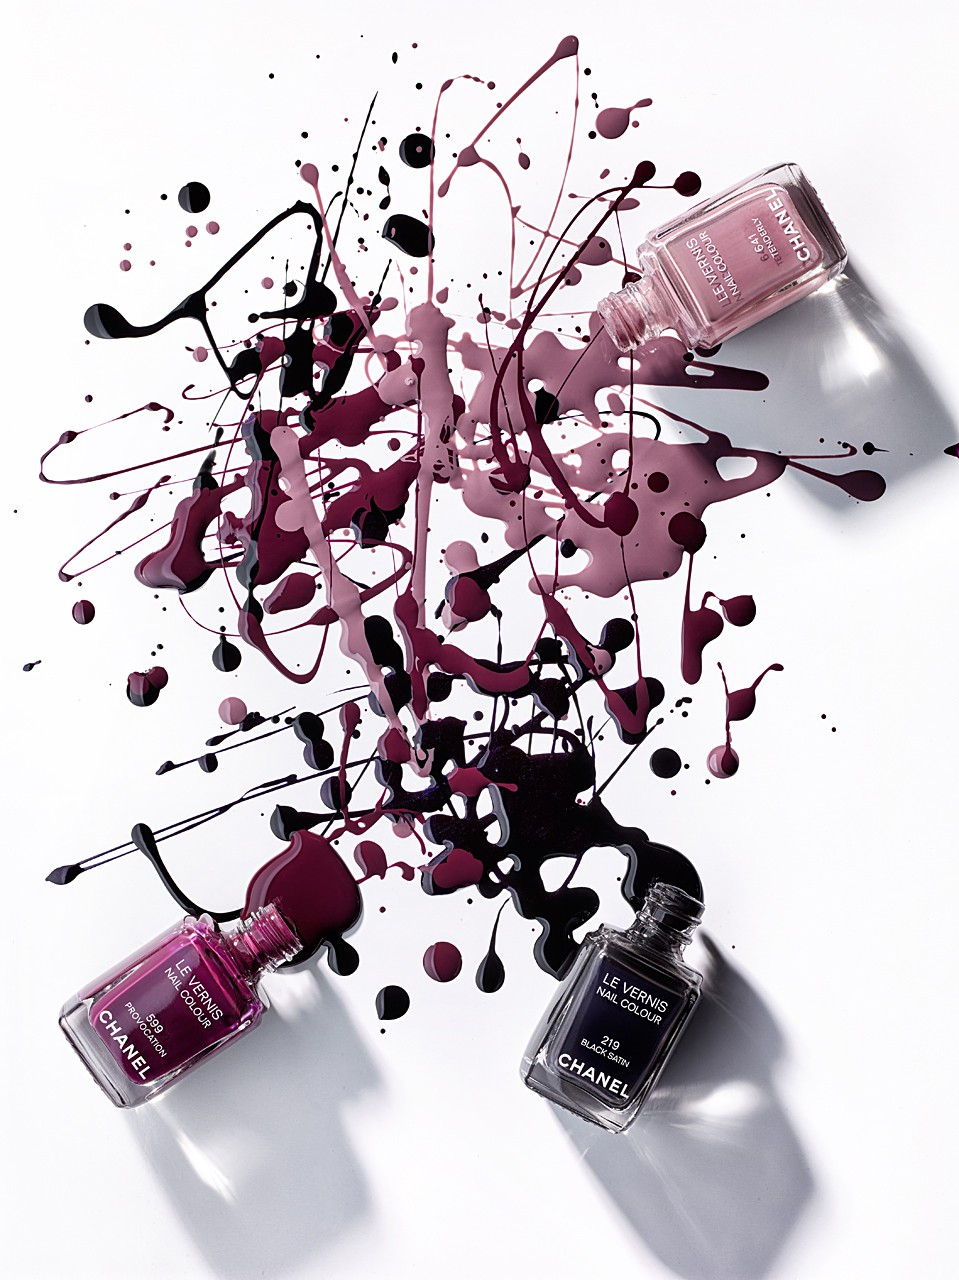 Sabine-Scheer-Jackson-Pollock-nail-colour-liquid-photography